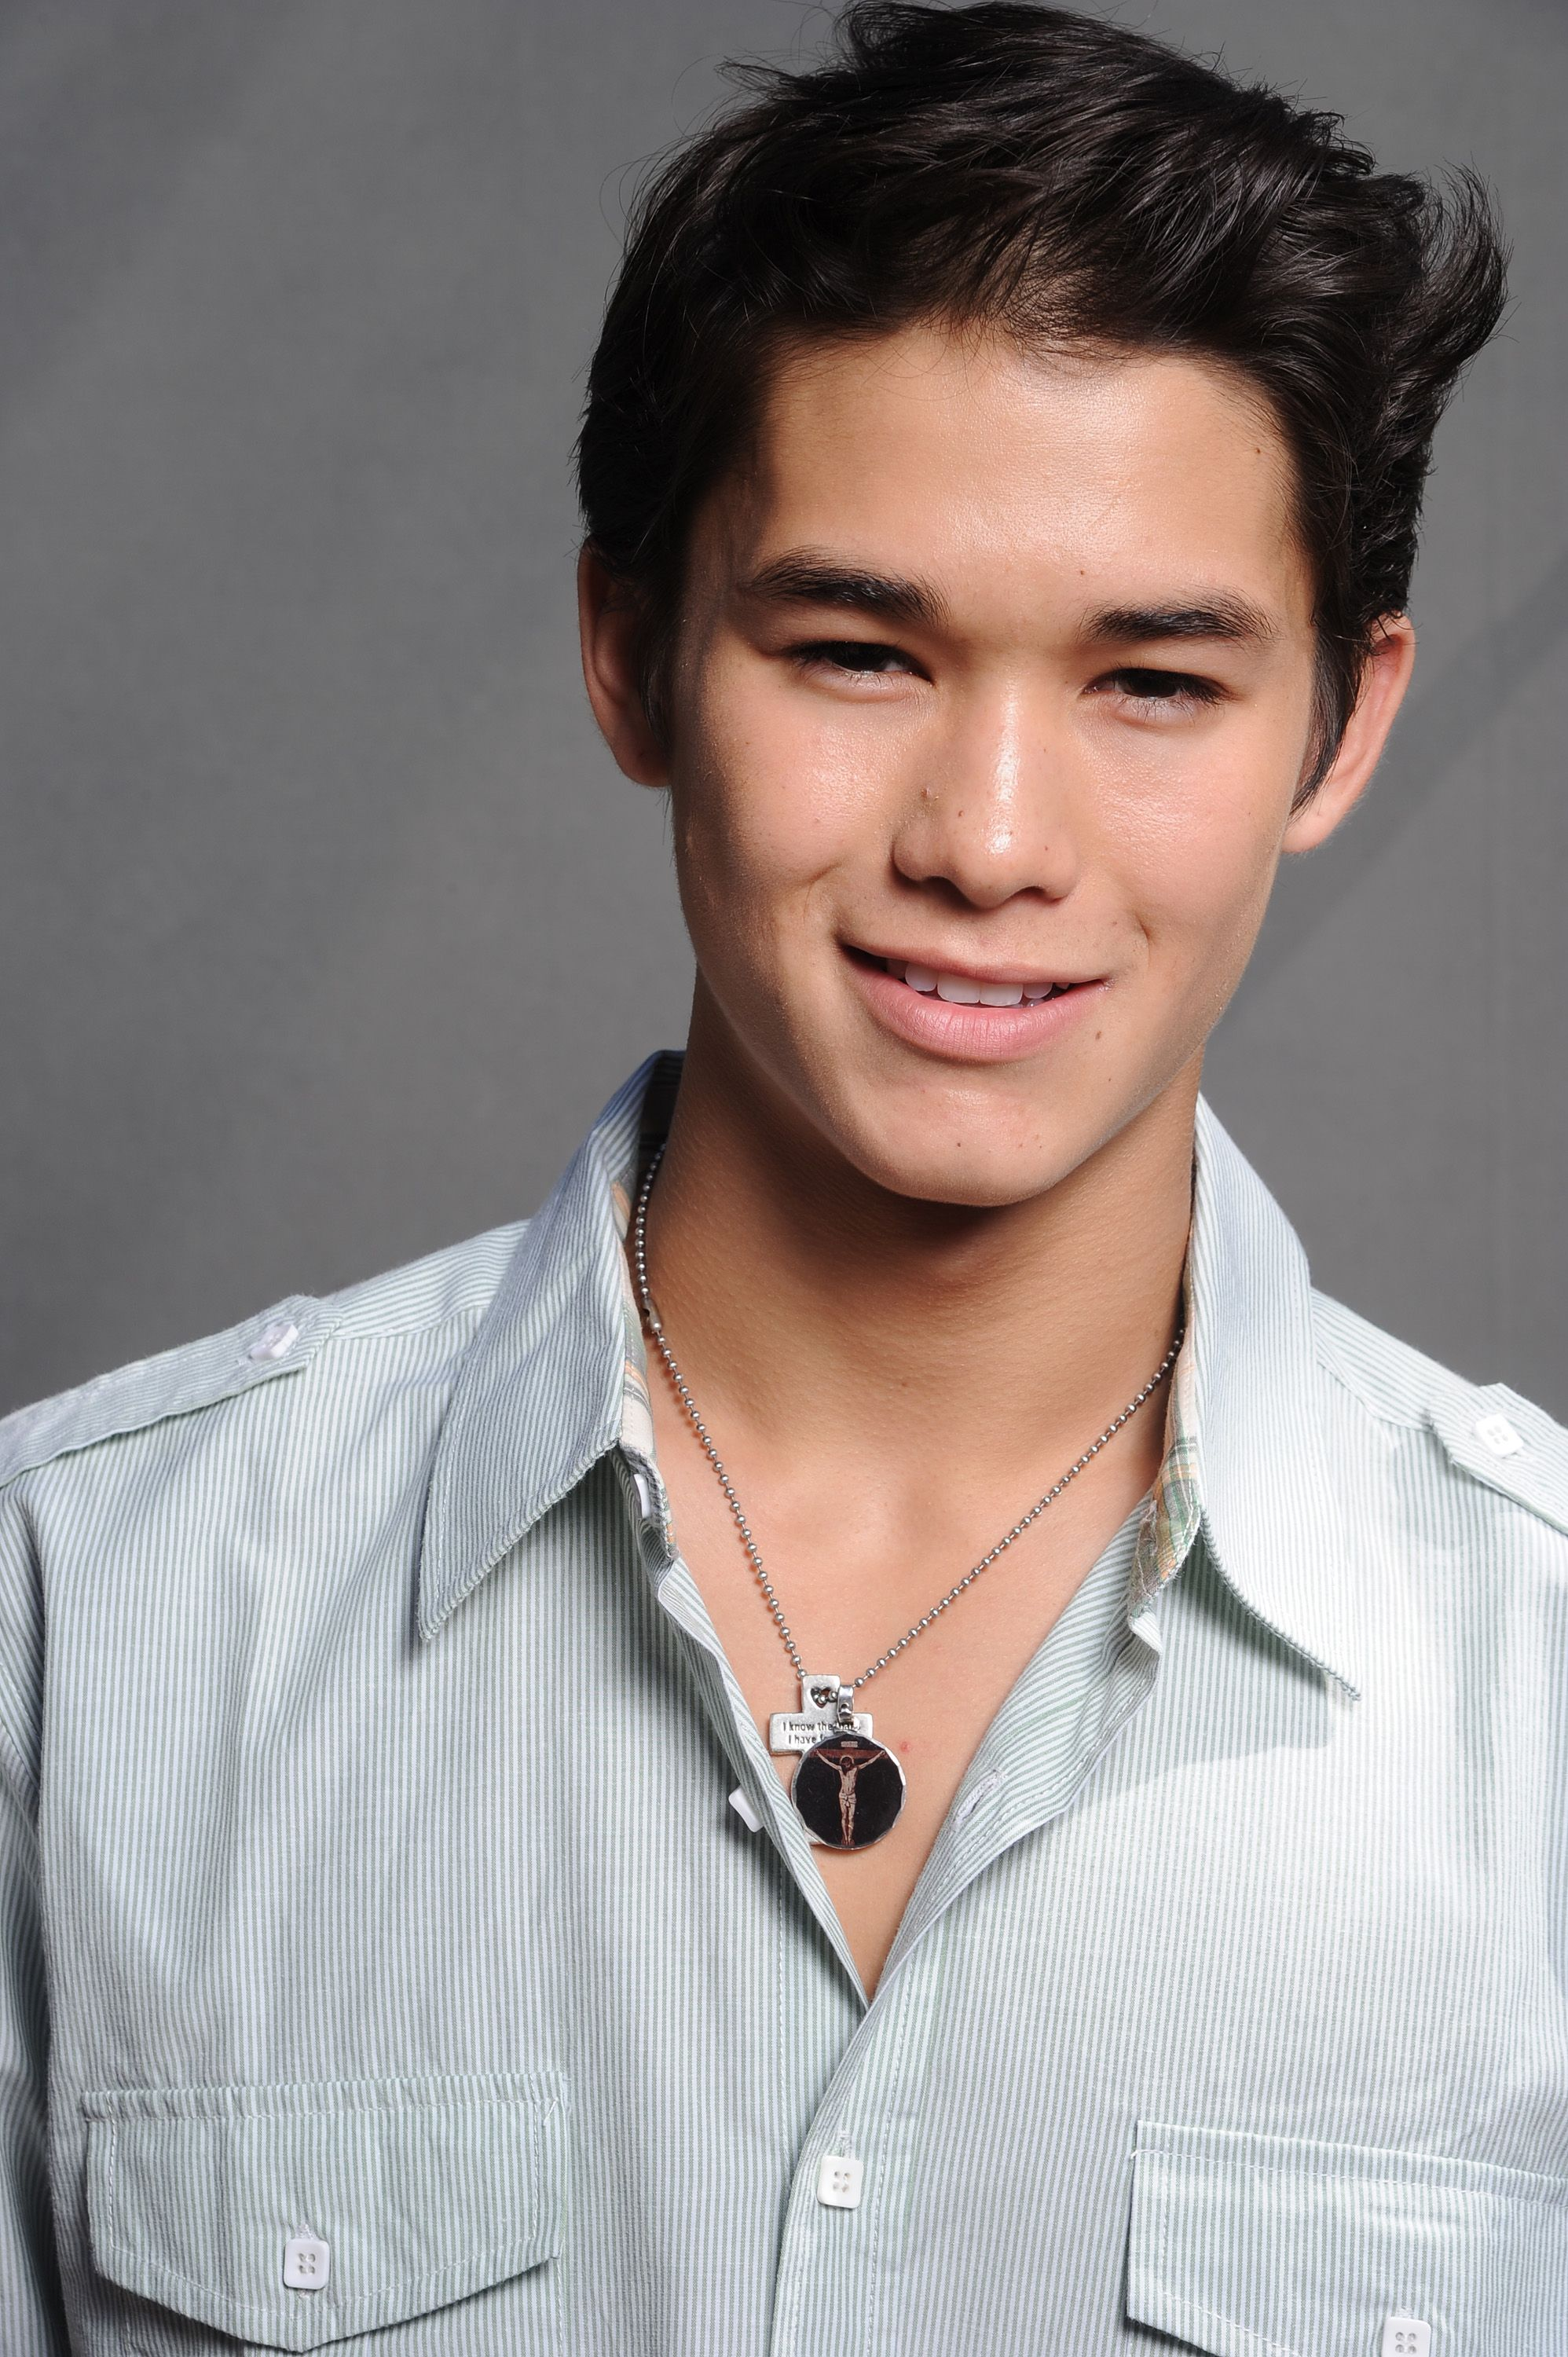 The 23-year old son of father Nils Allen Stewart and mother Renee Stewart, 165 cm tall Booboo Stewart in 2017 photo